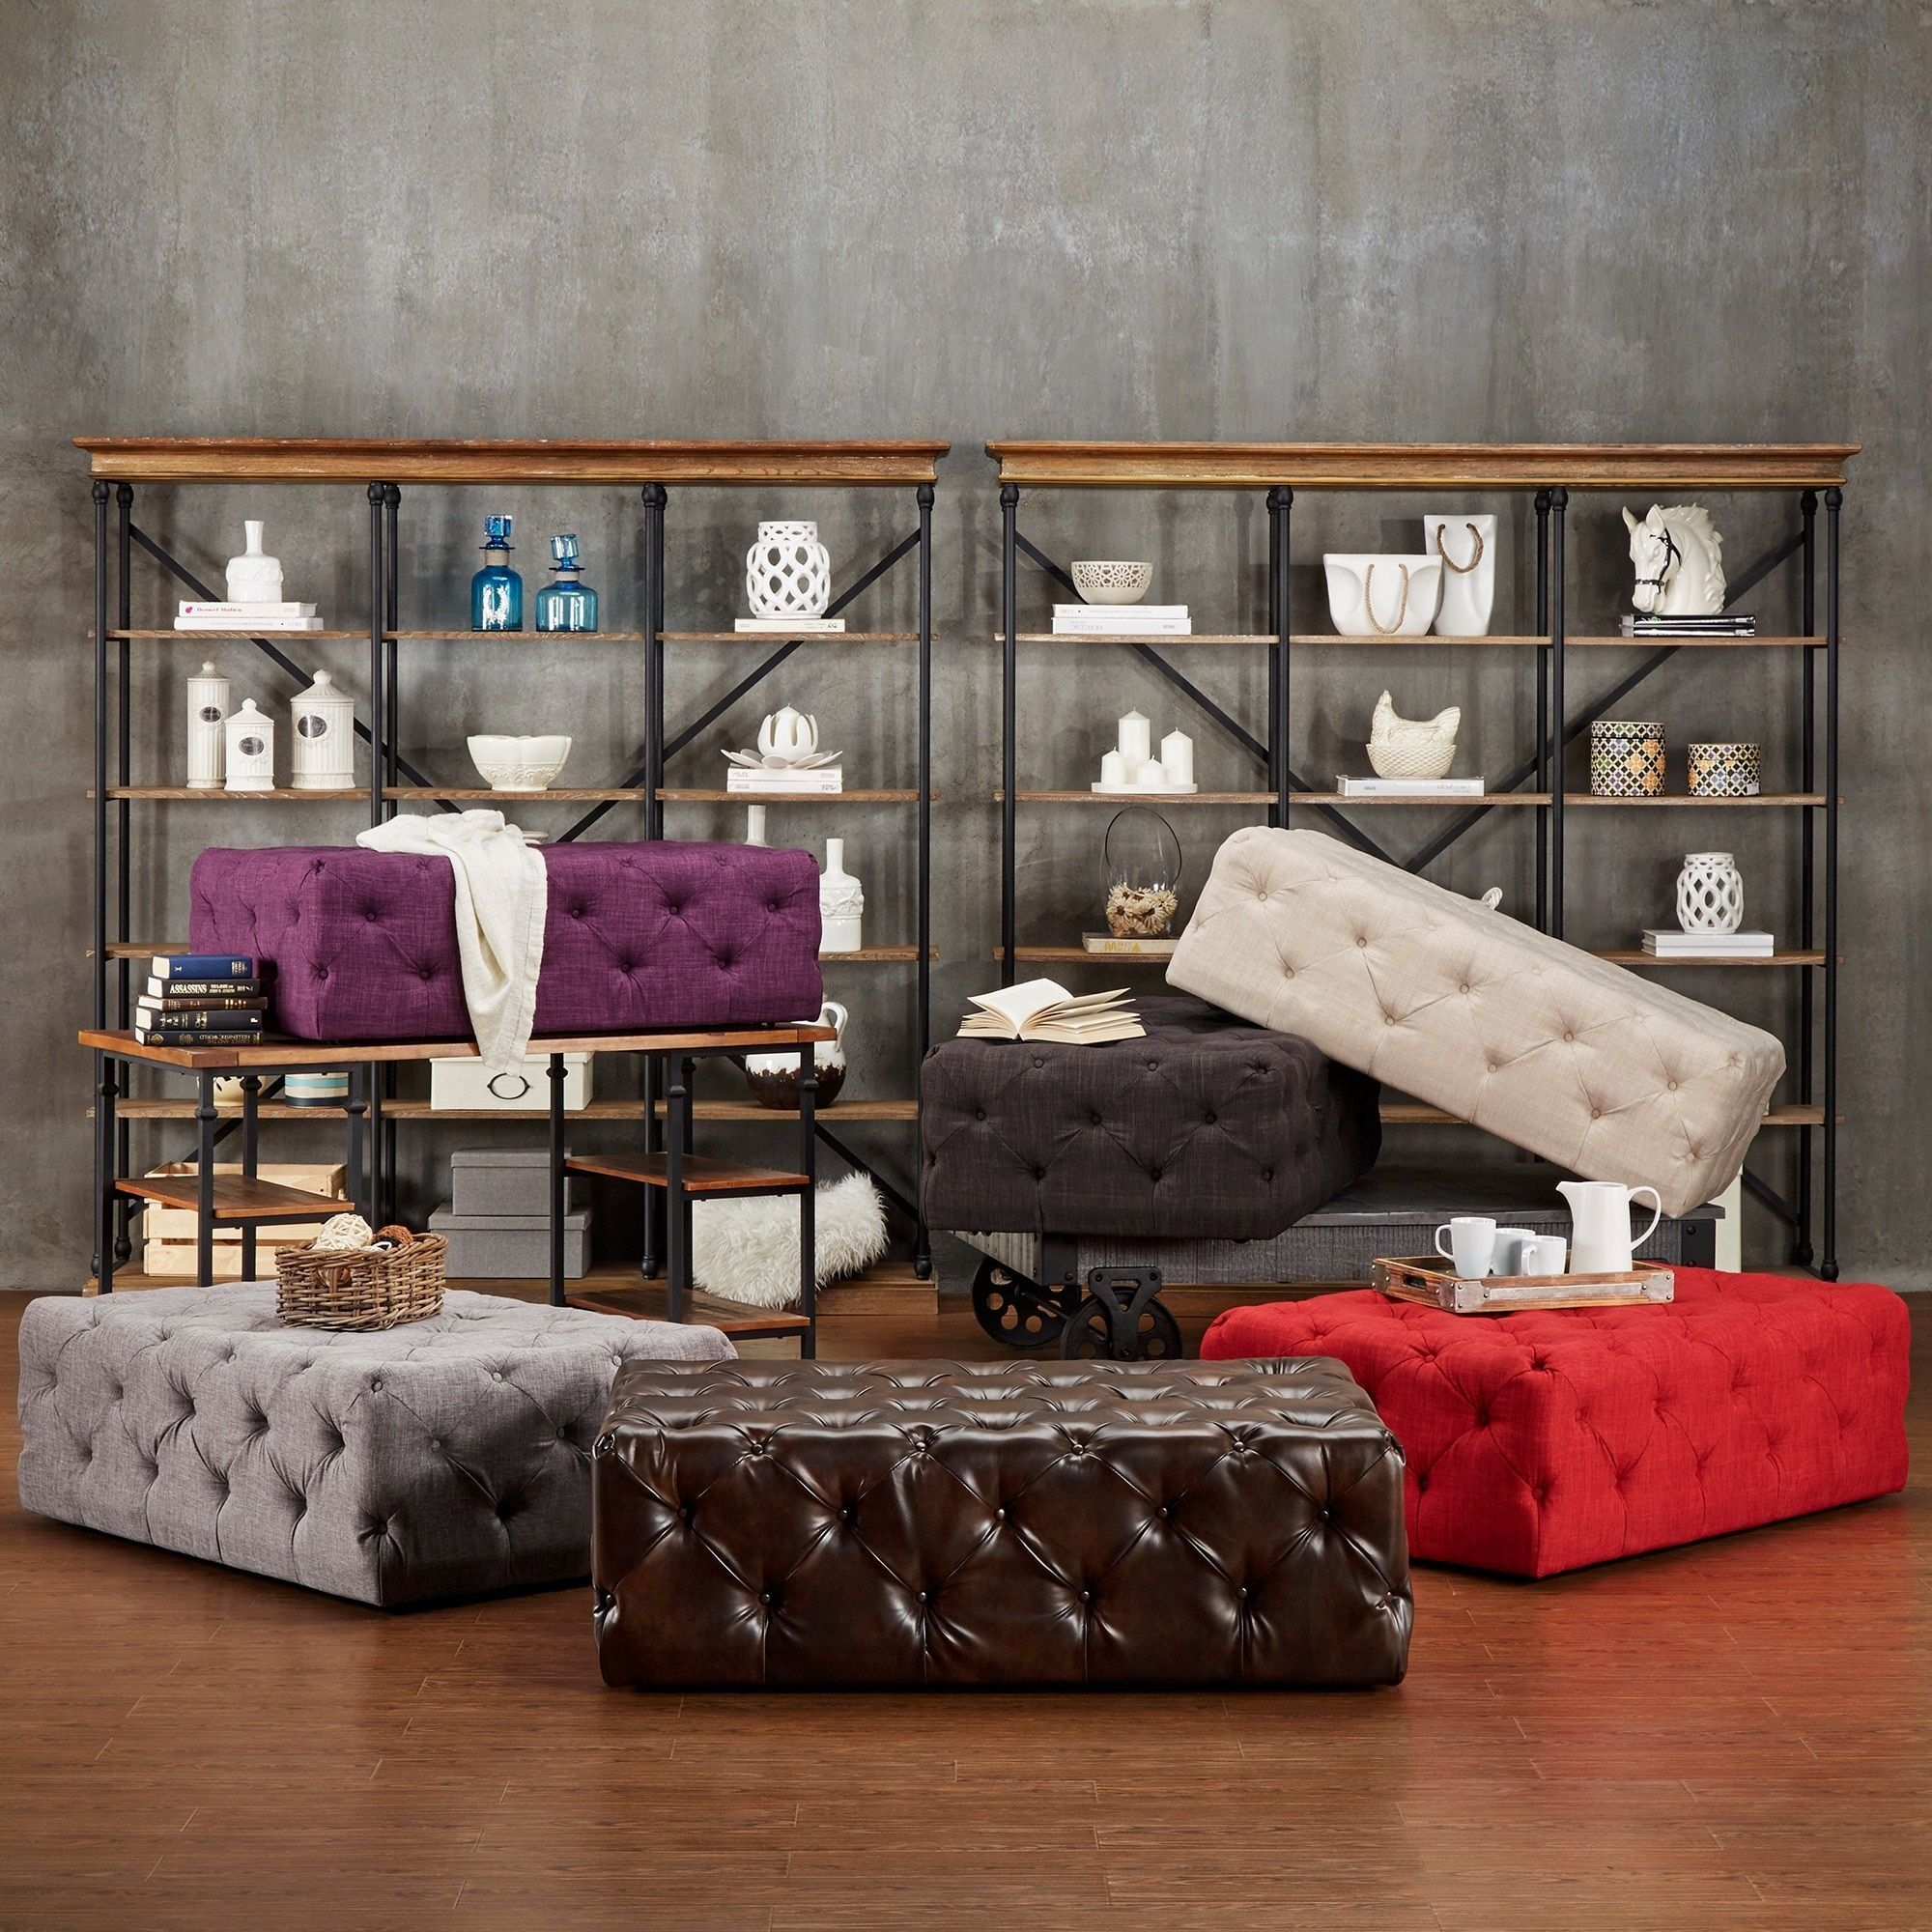 Knightsbridge Rectangular Traditional Tufted Cocktail Ottoman with Casters  by SIGNAL HILLS by INSPIRE Q